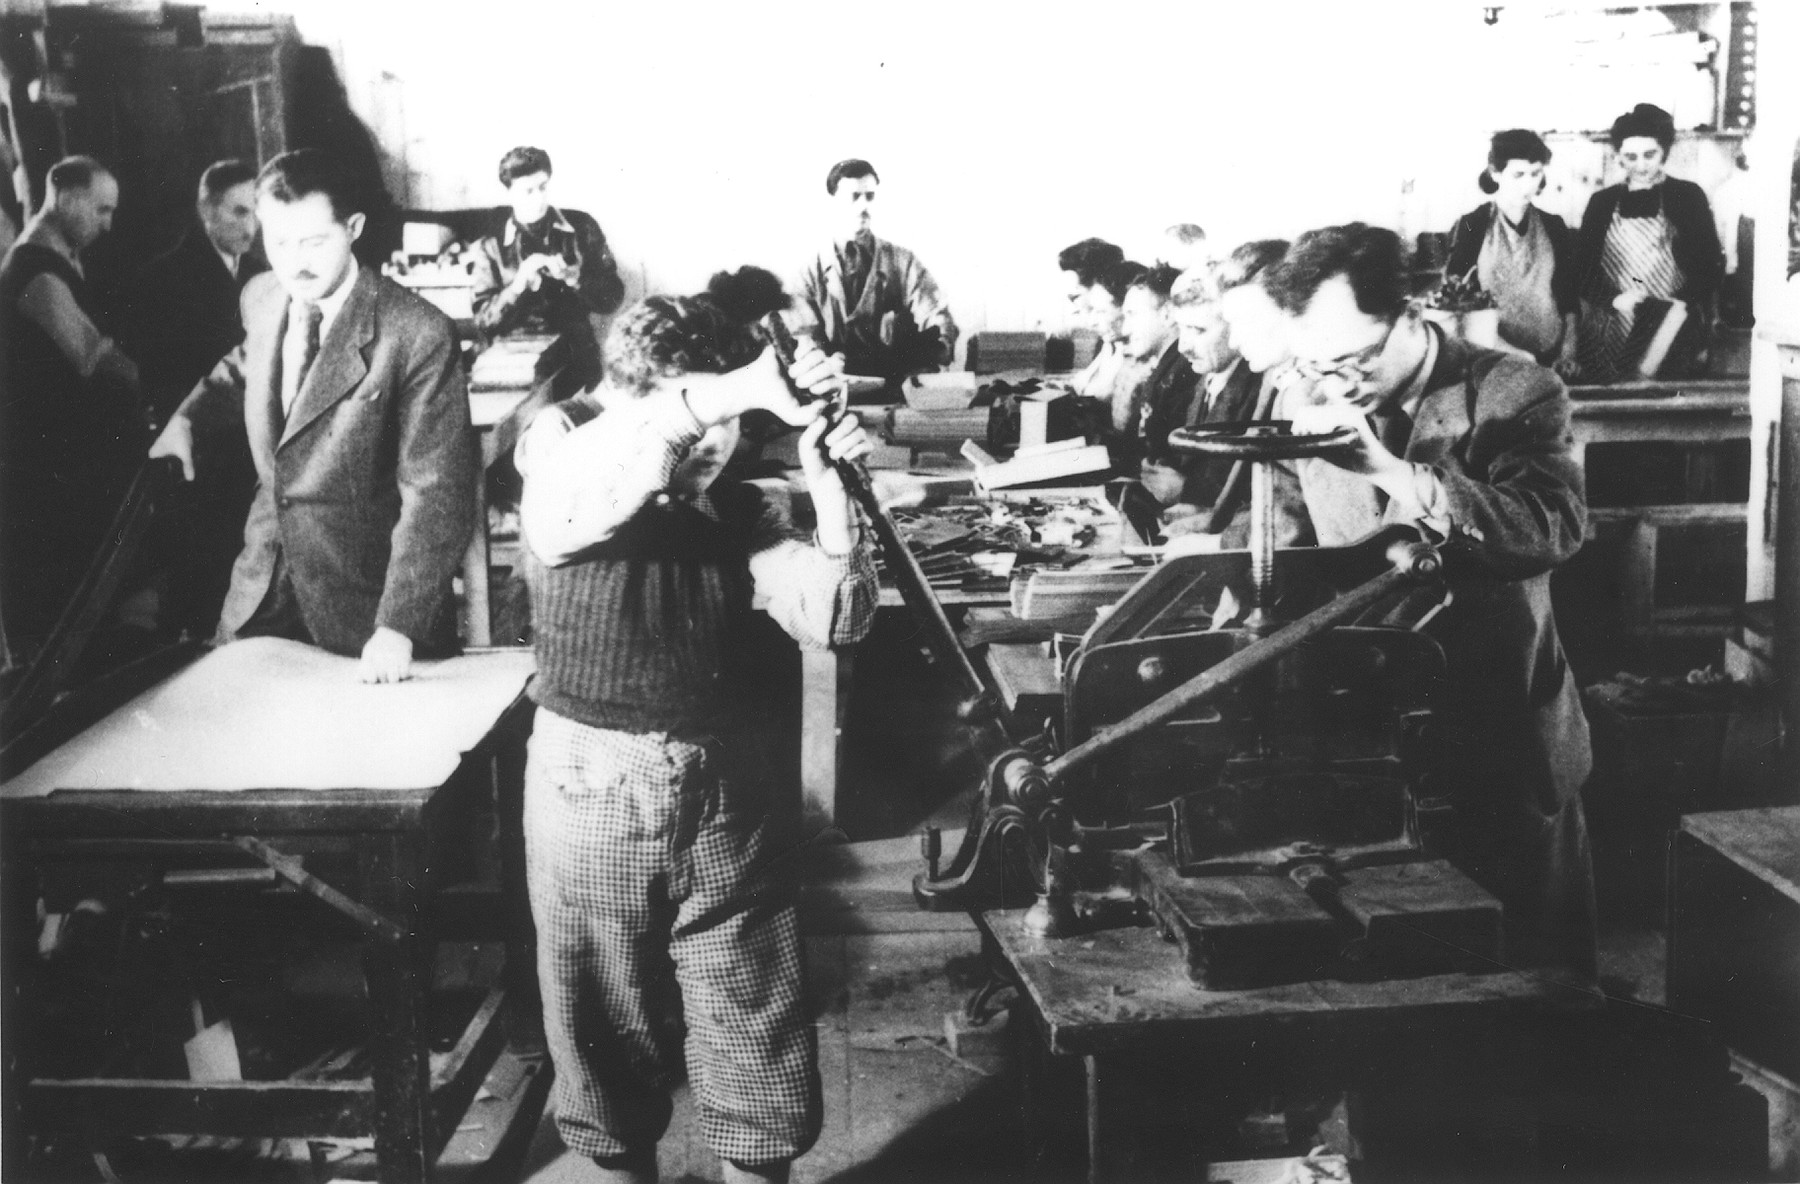 Prisoners making paper products in a factory at the Novaky labor camp.